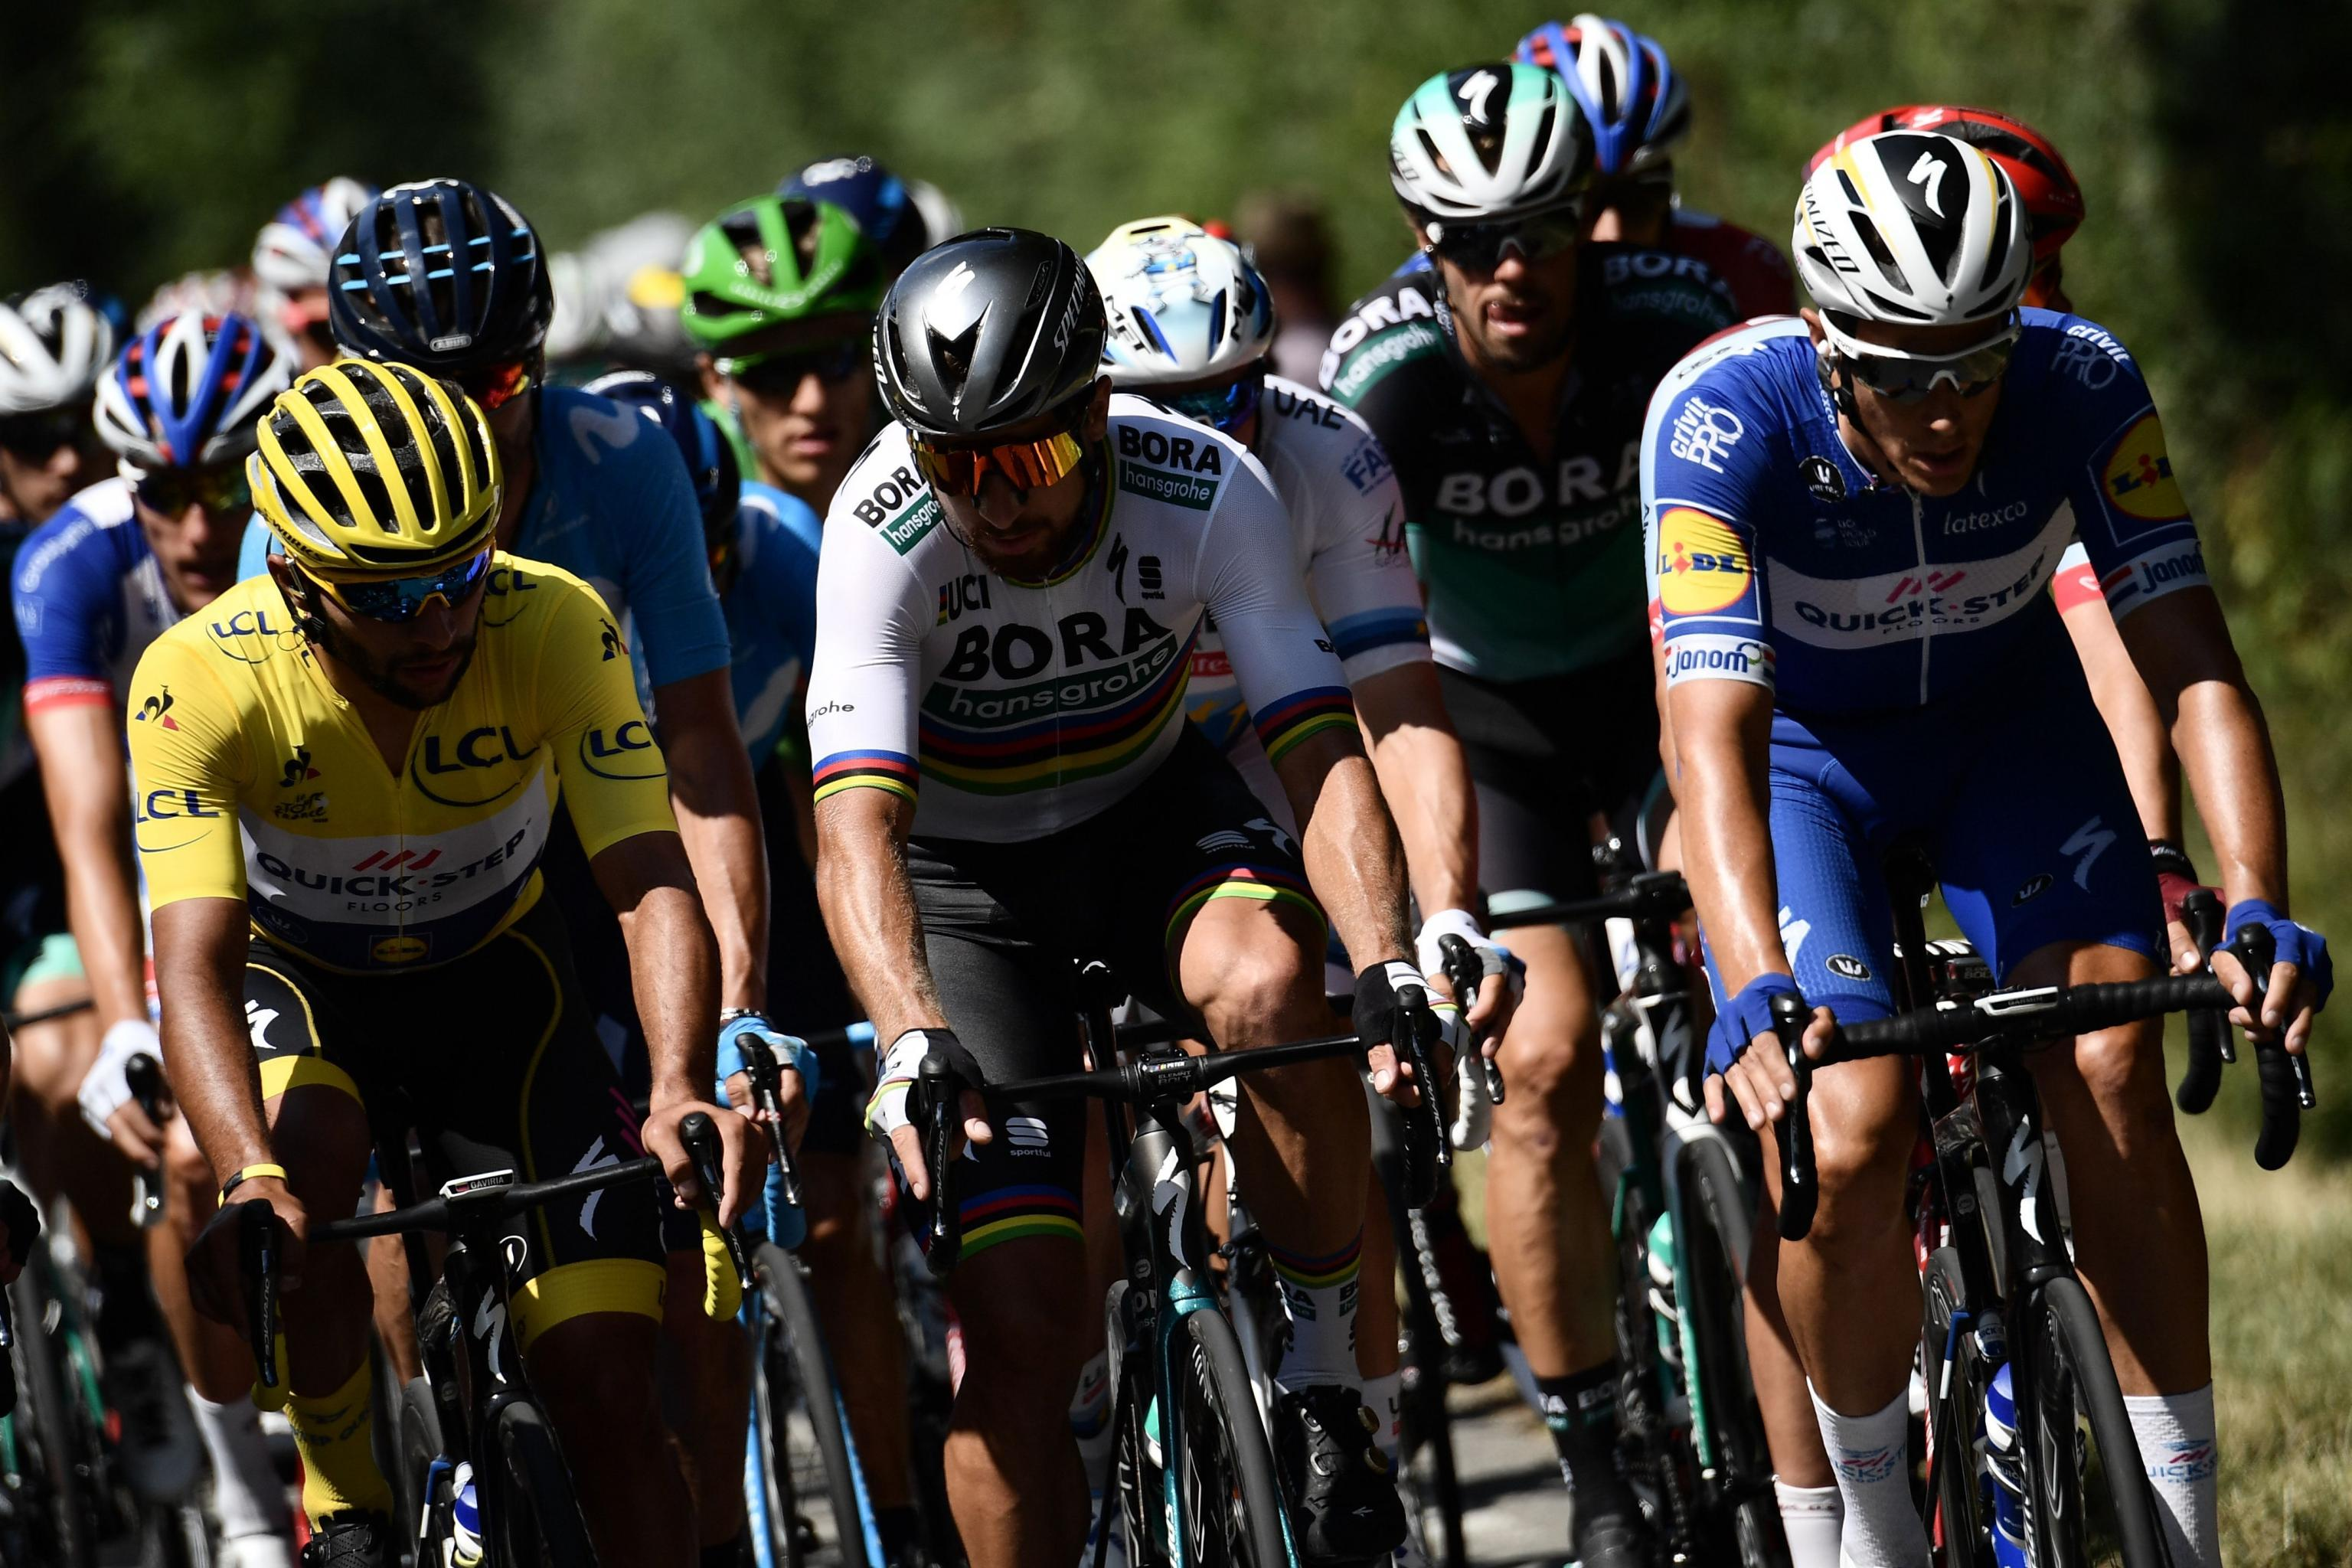 Tour De France 2018 Latest Standings After Peter Sagan Tops Stage 2 Results Bleacher Report Latest News Videos And Highlights